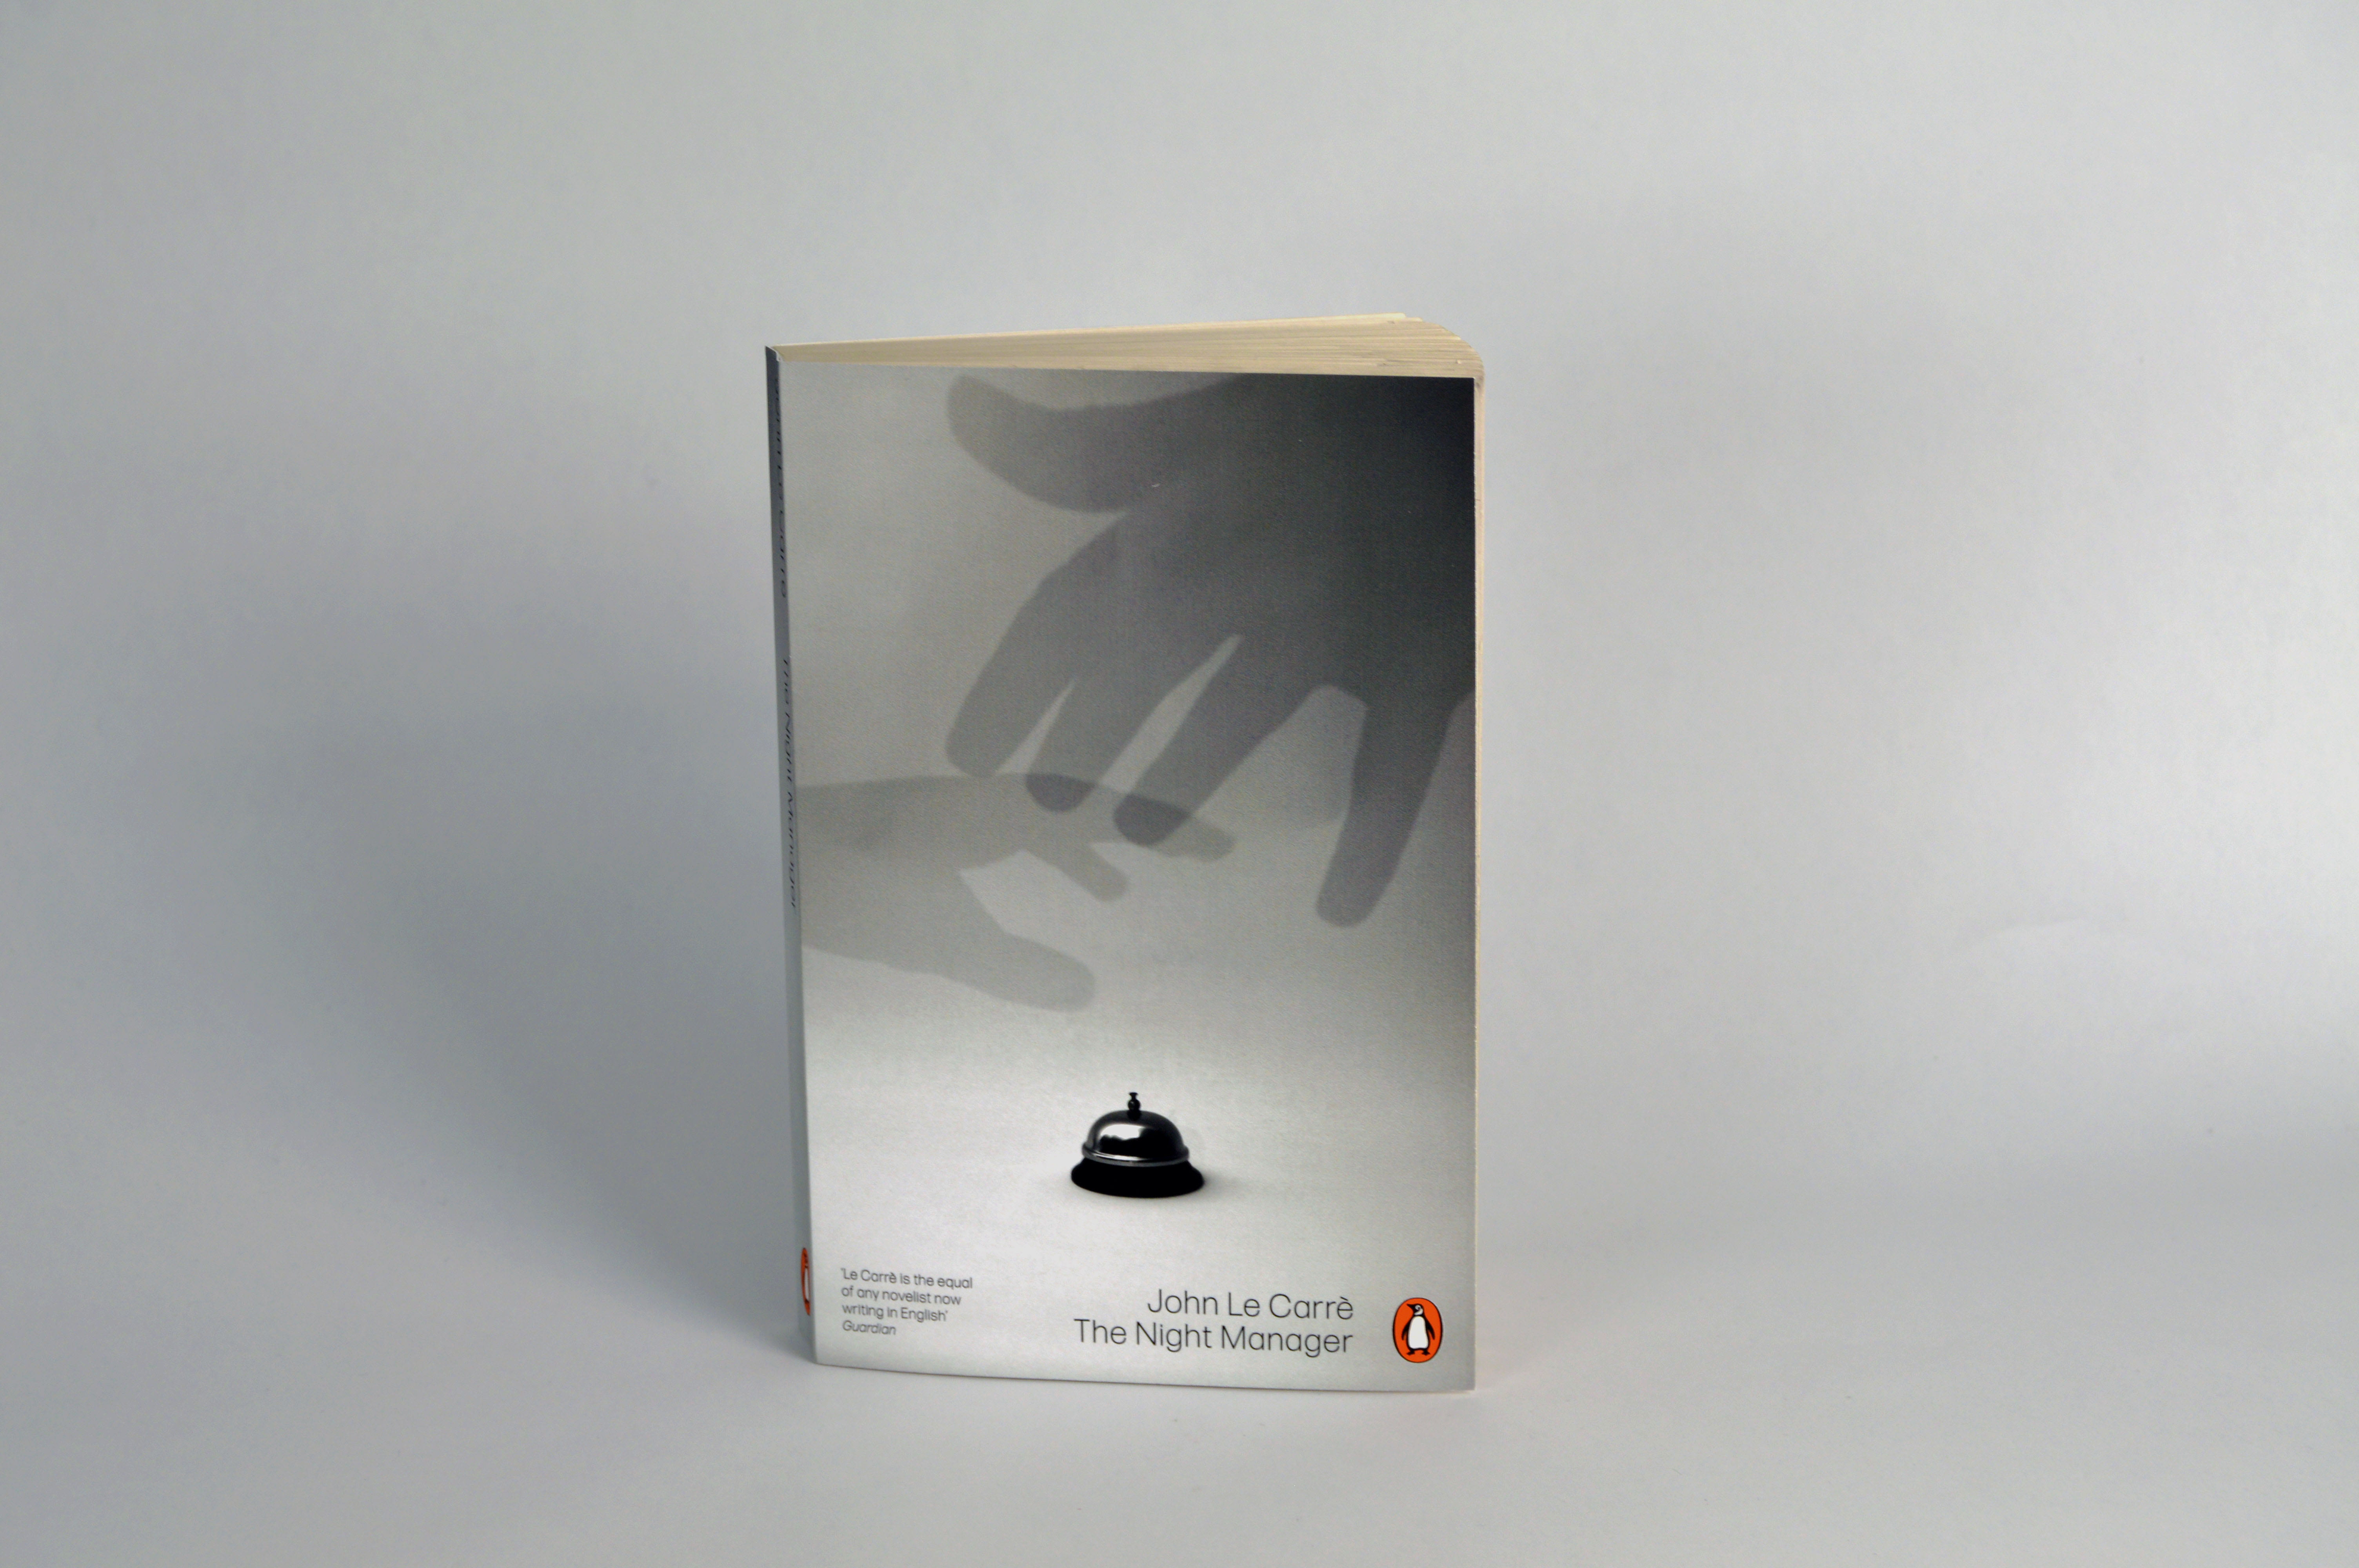 Front view of cover design depicting the artwork of 2 hands reaching for the receptionists bell.